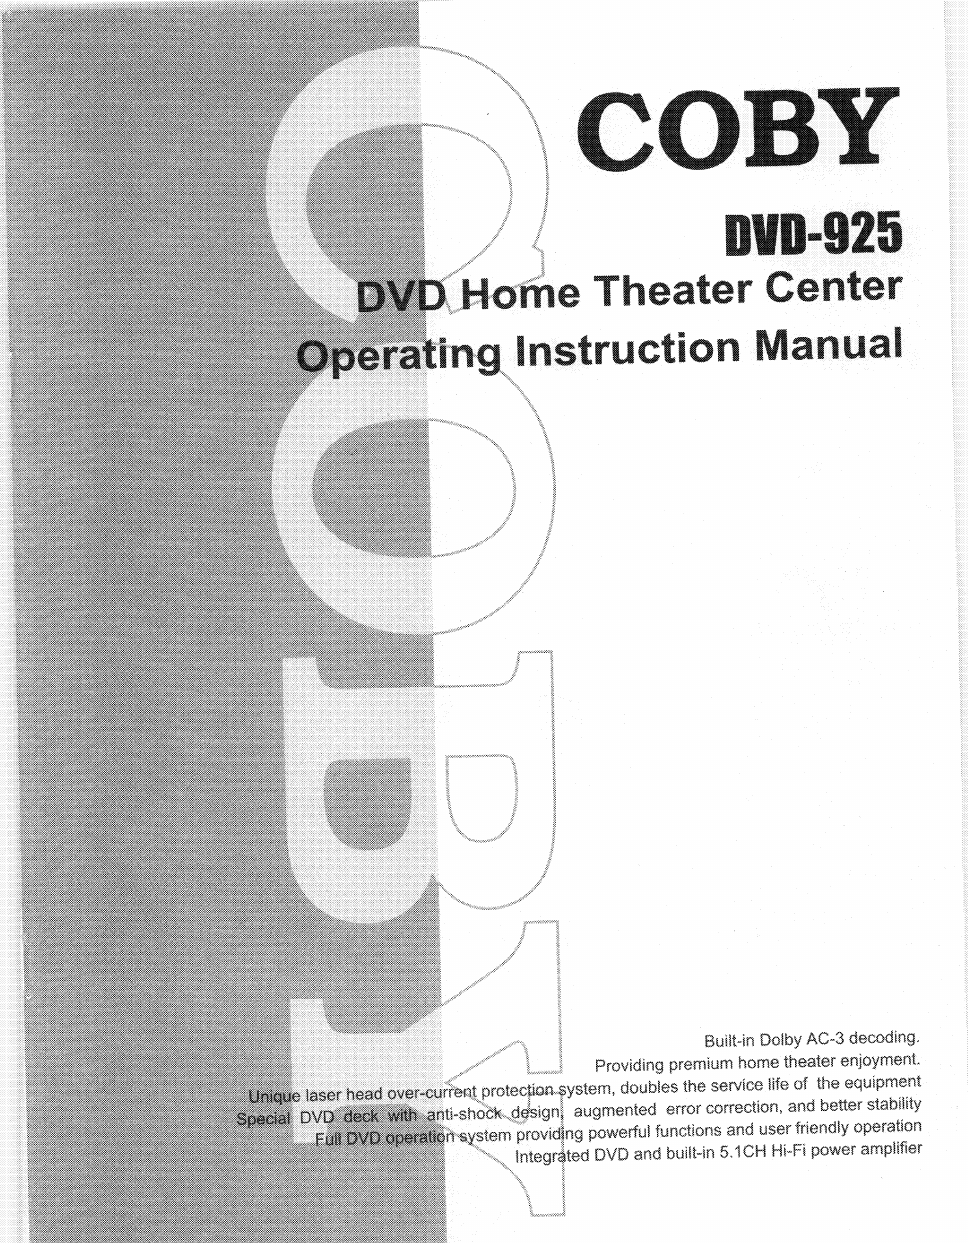 coby dvd 925 user s manual free pdf download 32 pages rh manualagent com Coby Headset Coby DVD Player